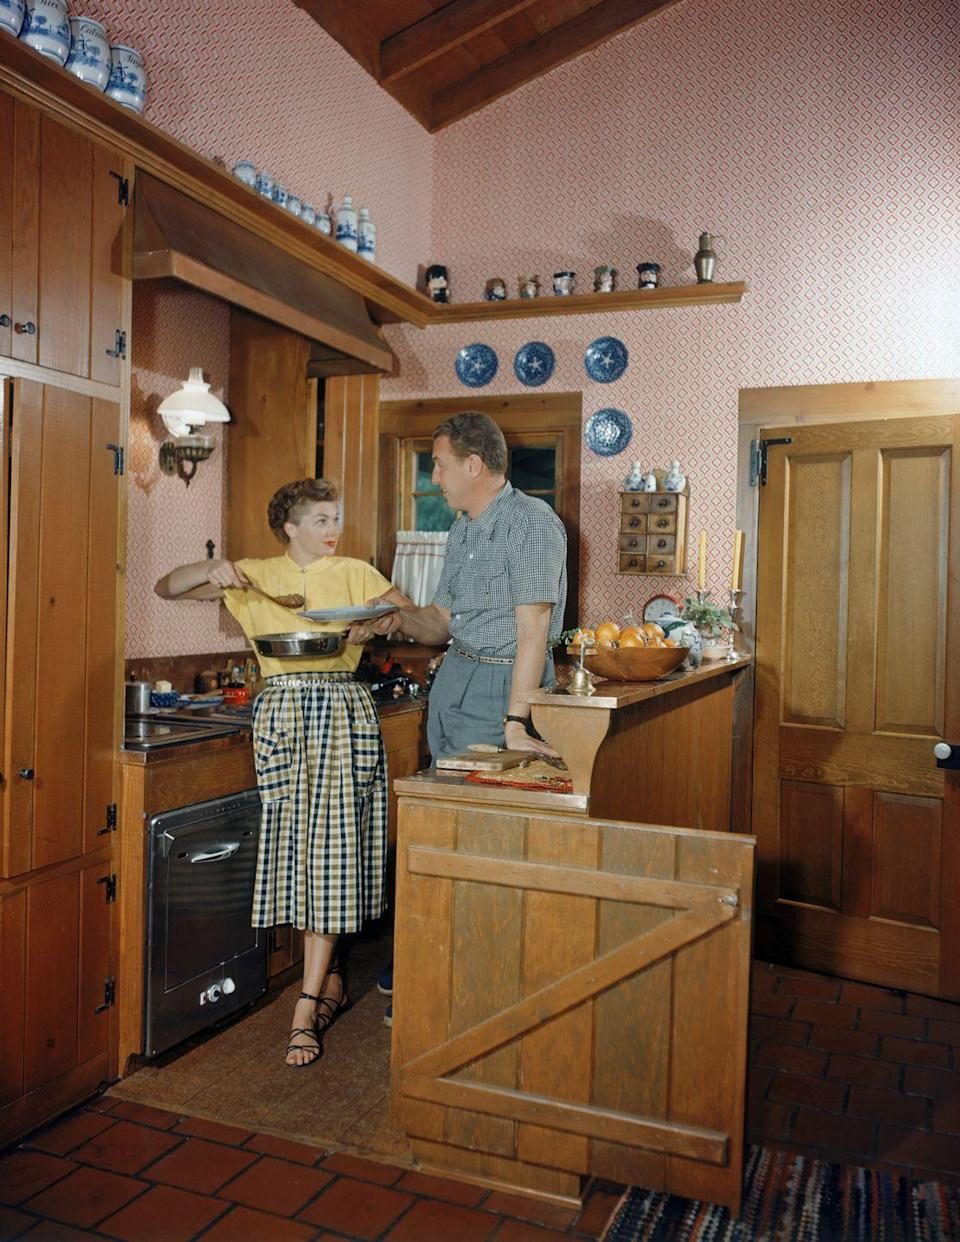 <p>Between the wooden accents and the ginger jars, actress Esther William's kitchen is a slice of Americana. Here, she cooks dinner with her husband, singer Ben Gage, in 1950. </p>